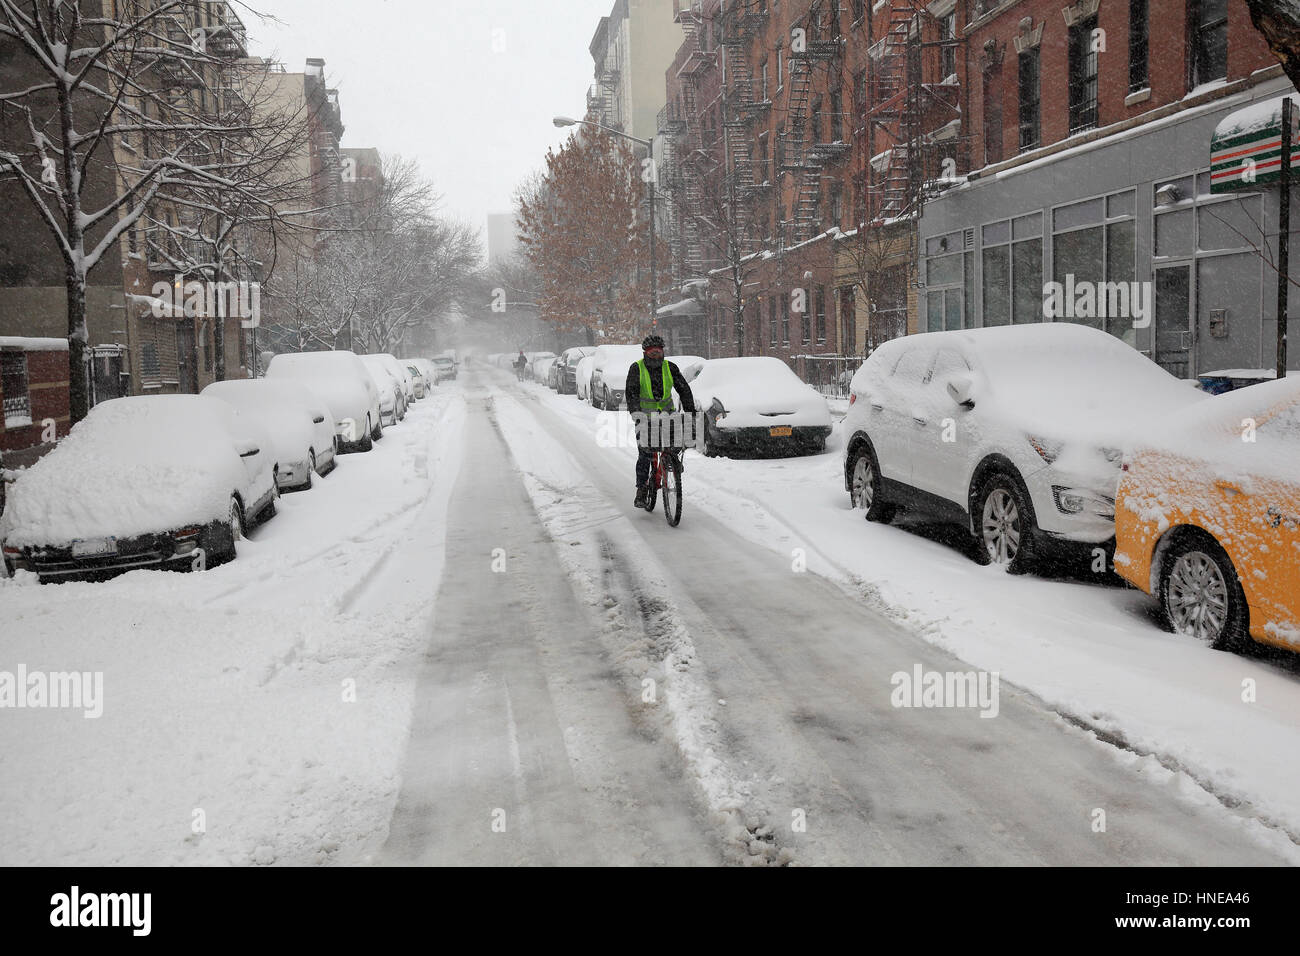 Biker in East Village, NY, during winter storm - Stock Image